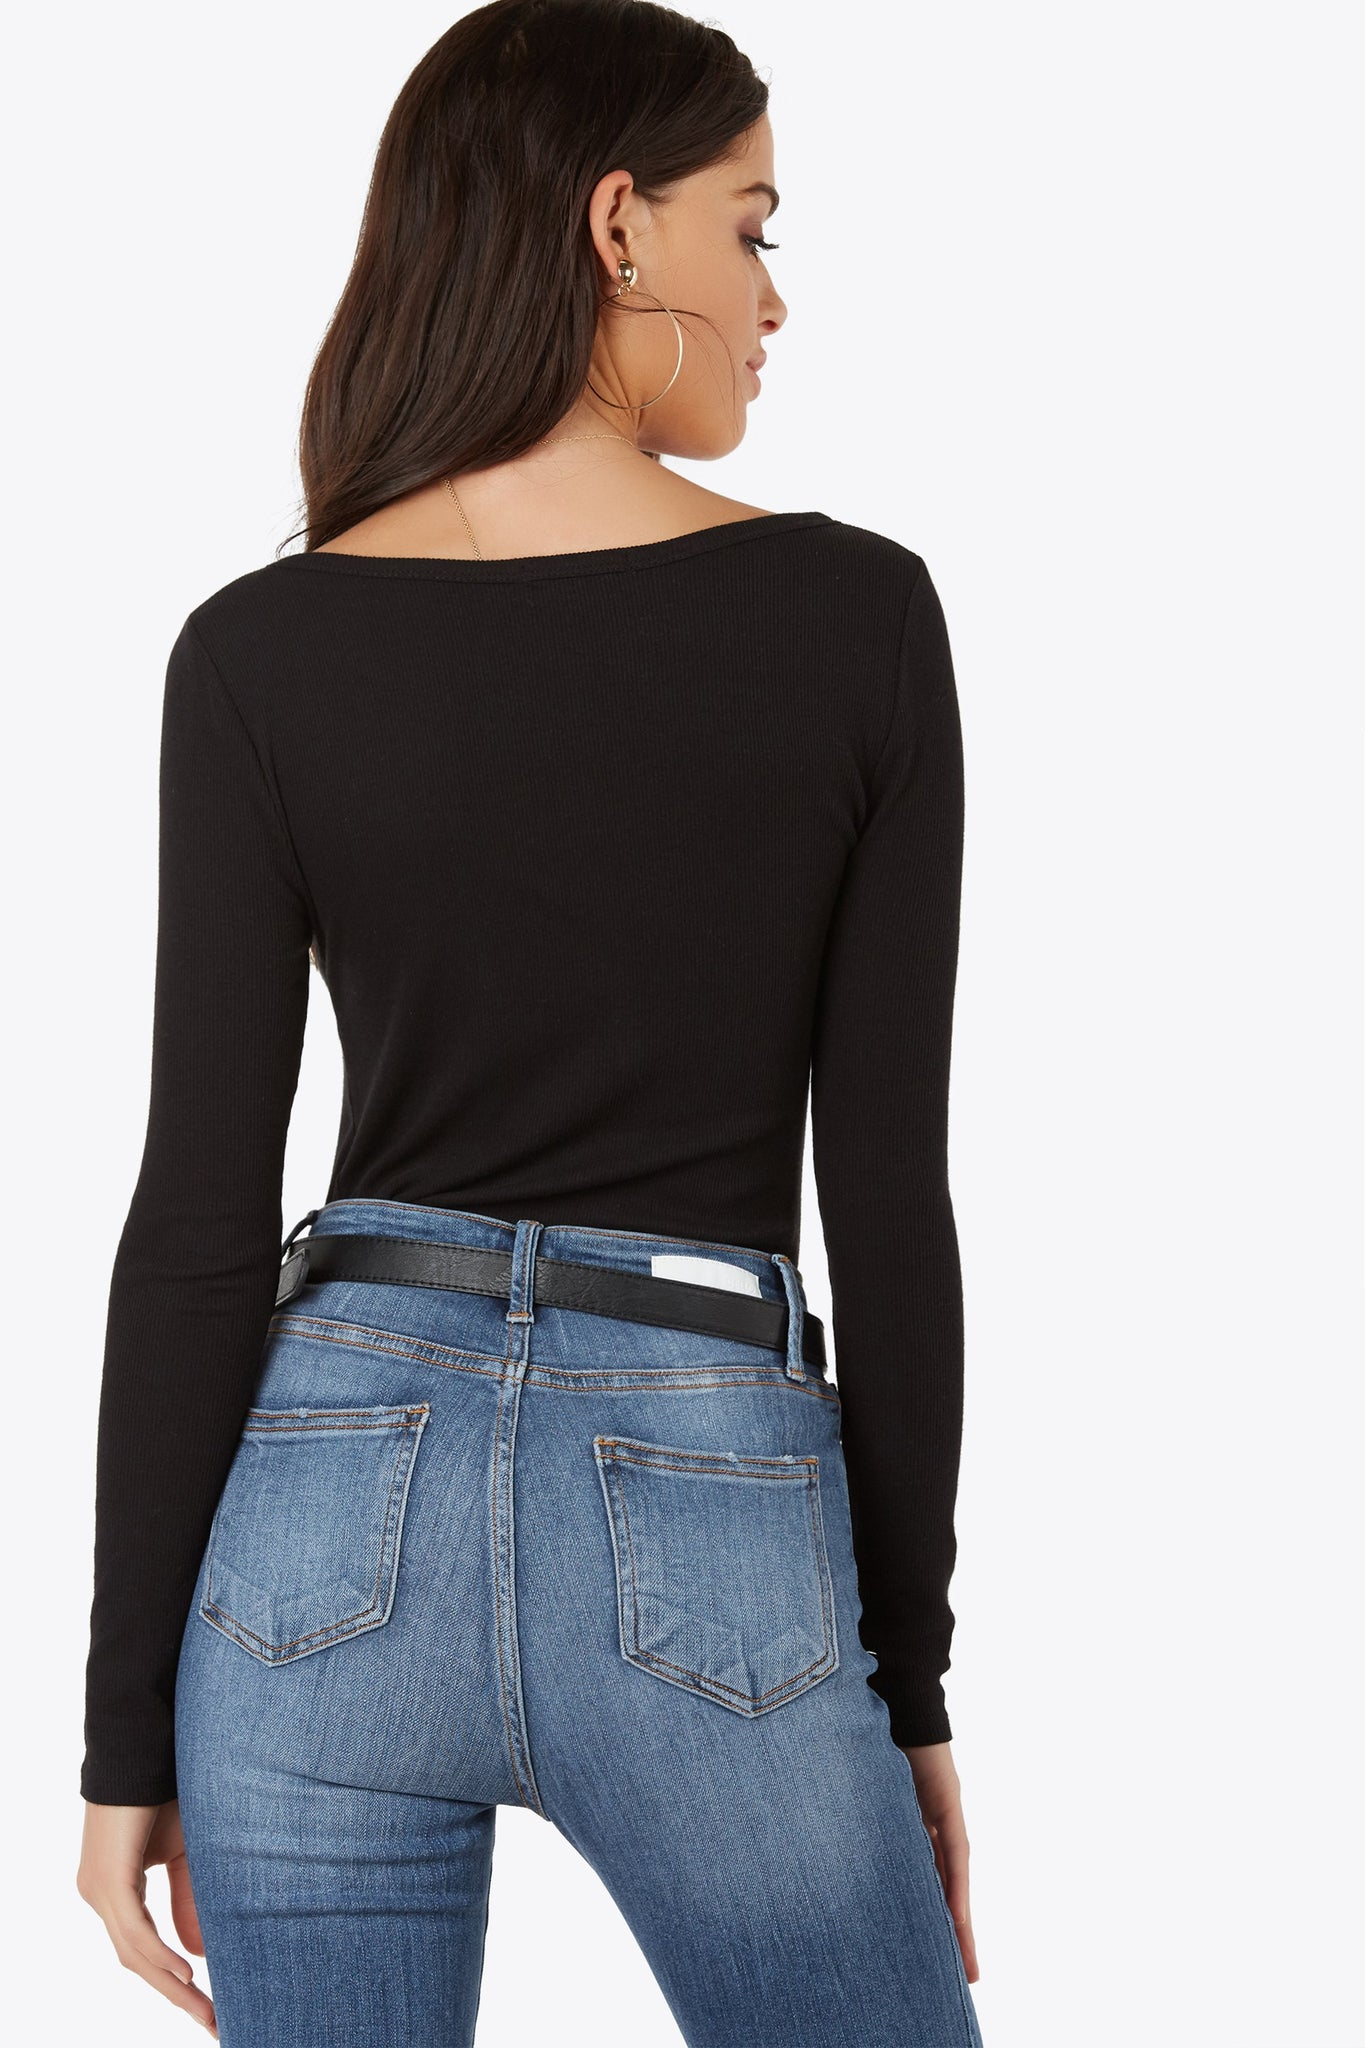 Necessary Basic Top